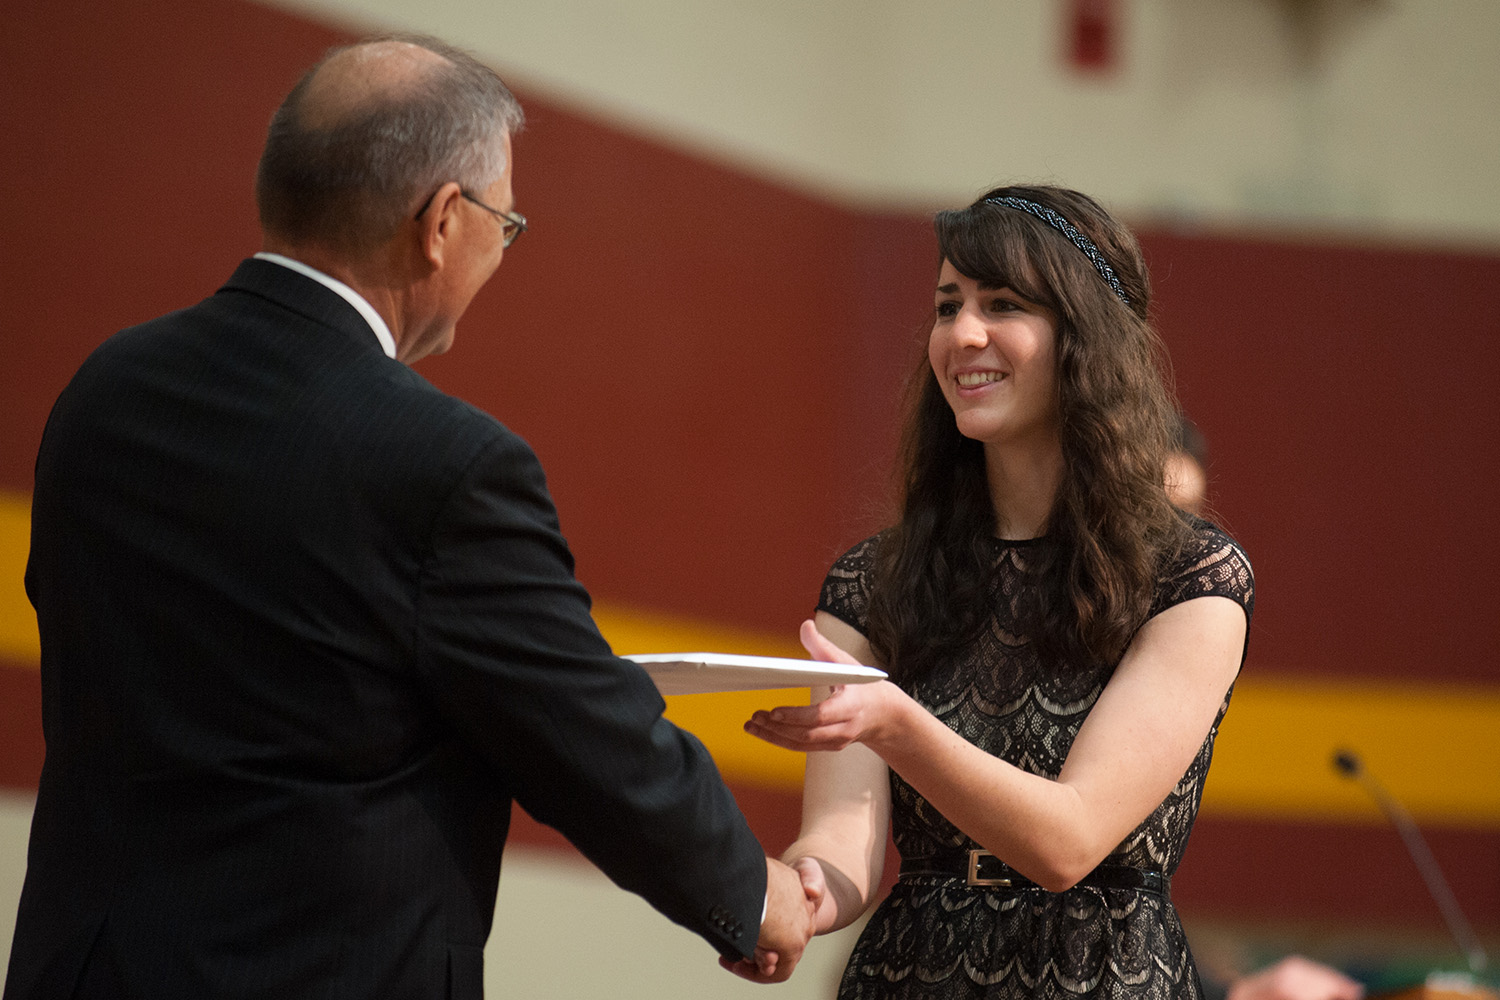 Elisabeth Wilder '15 (Hesston, Kan.) recieves her diploma. President Howard Keim conferred 148 degrees for the class of 2015.